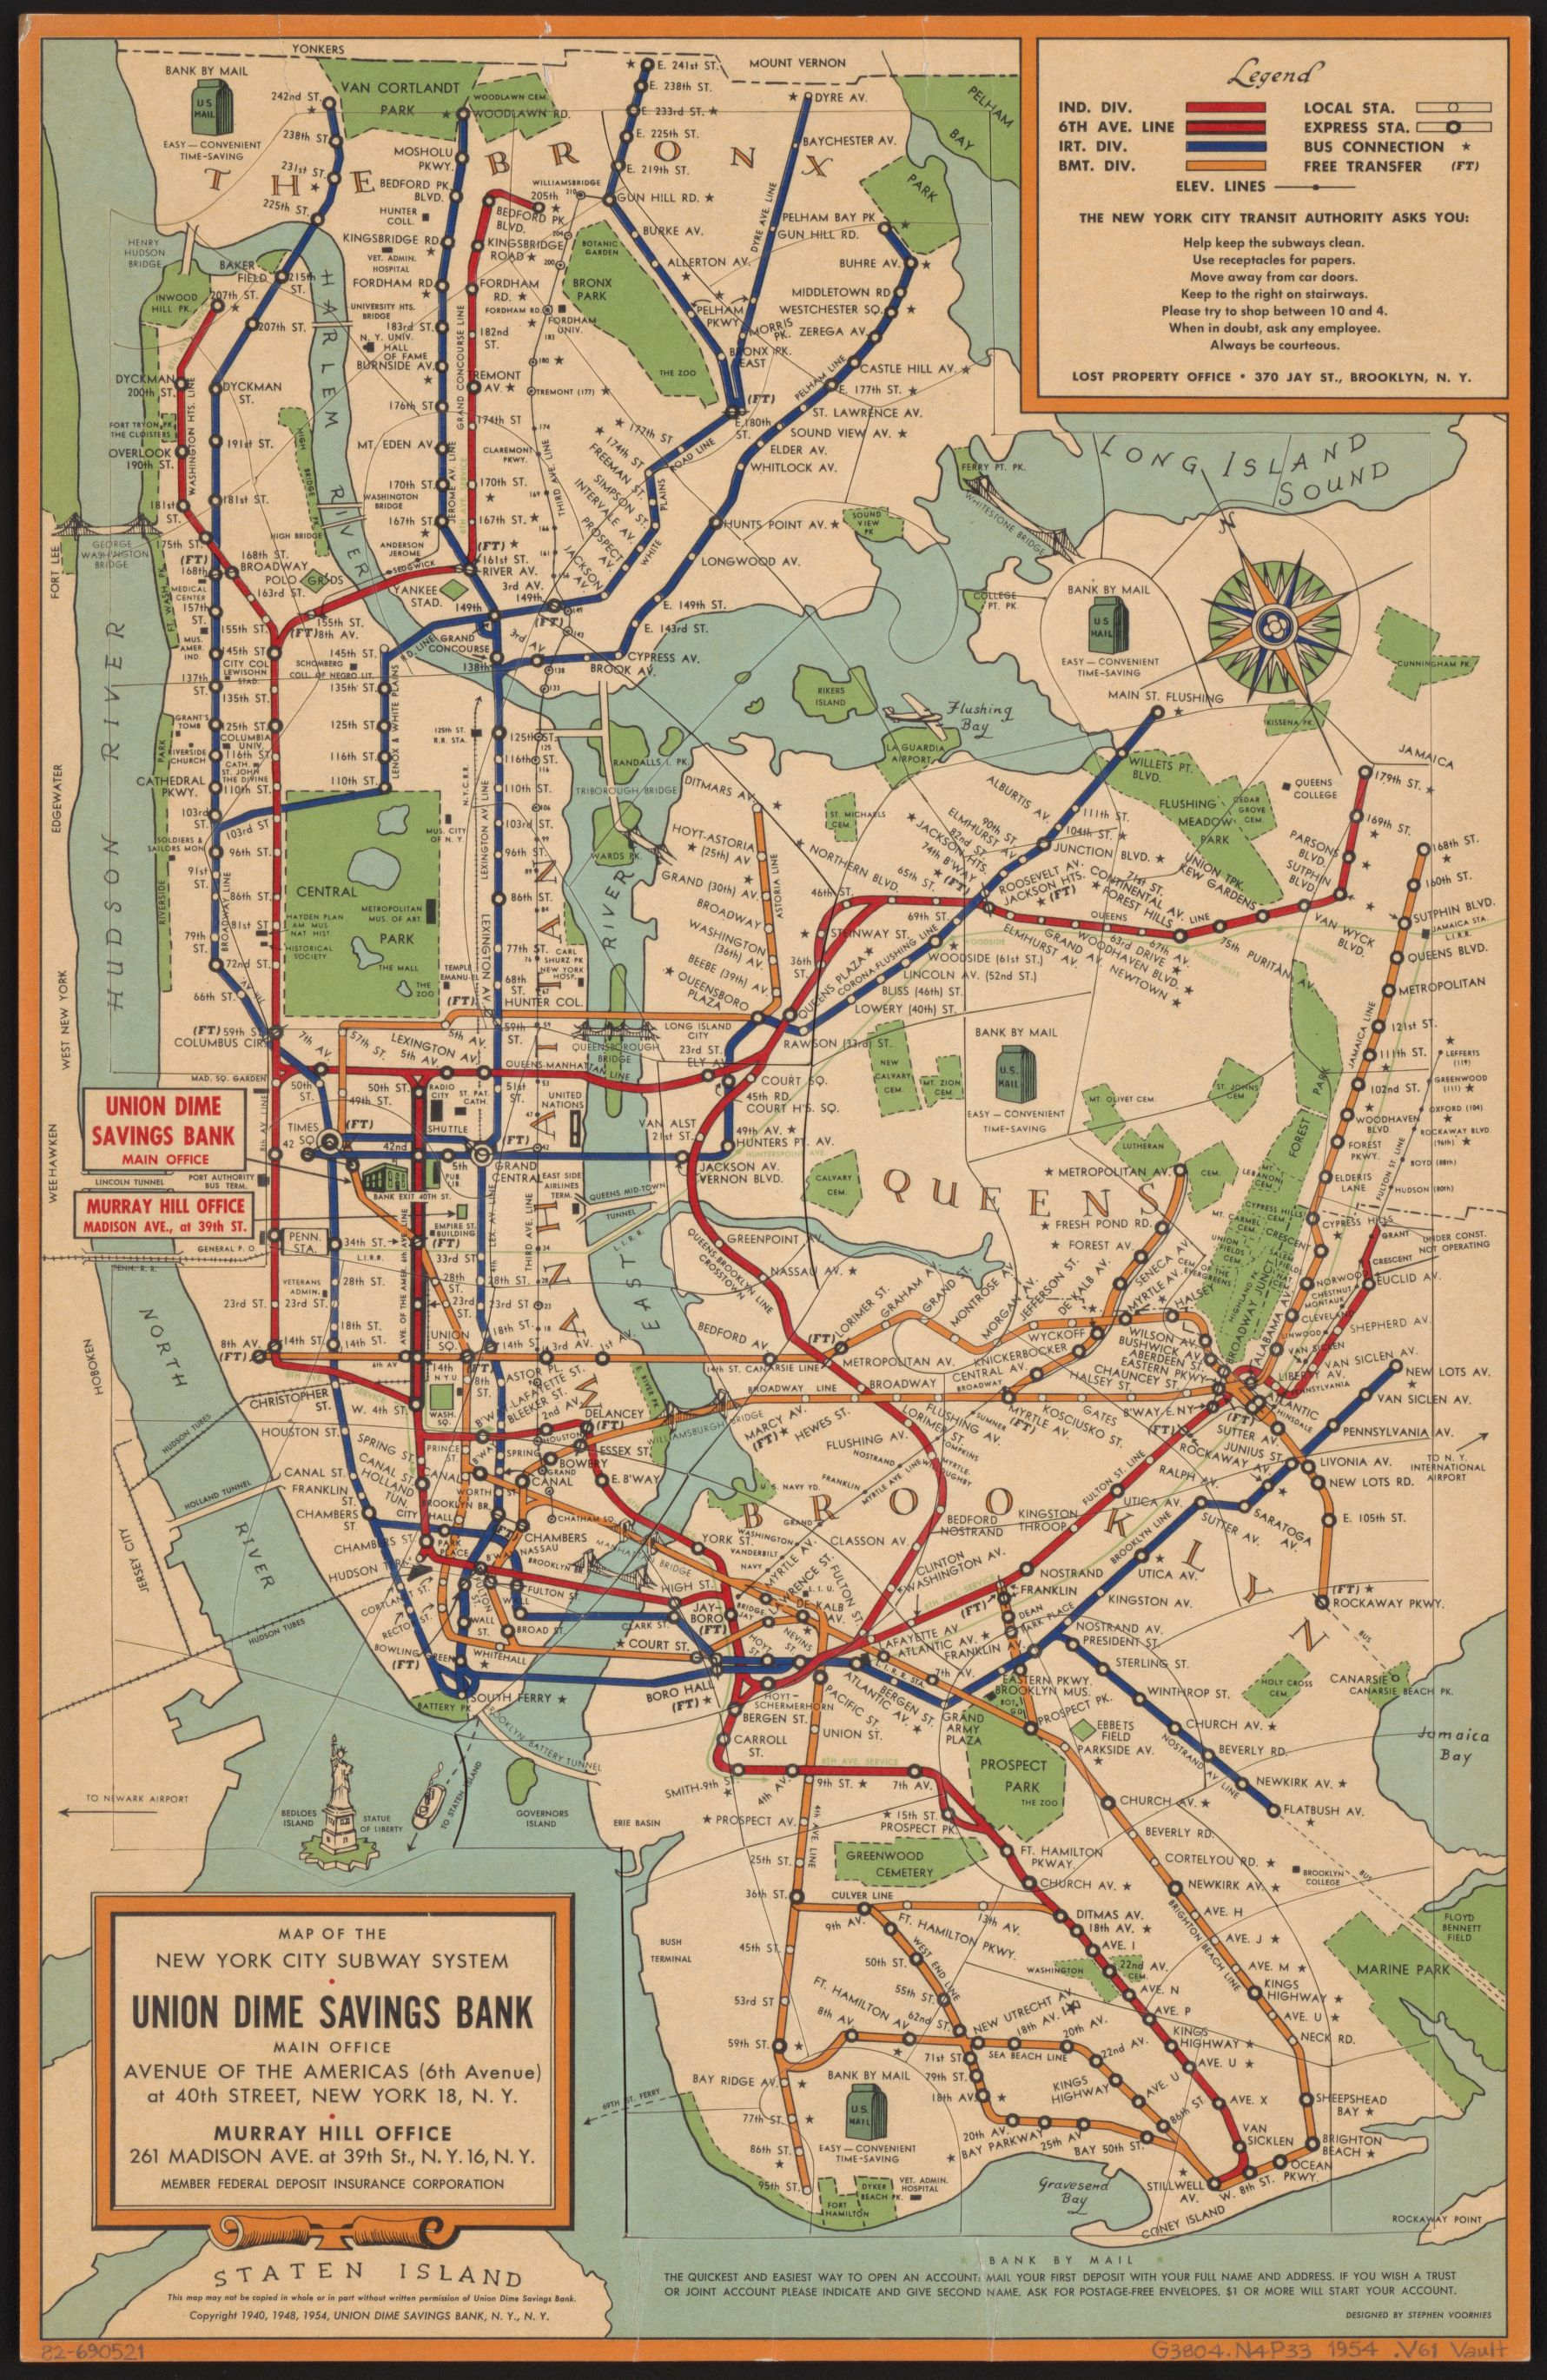 Maps Vintage Map Shows New York City Subway System In